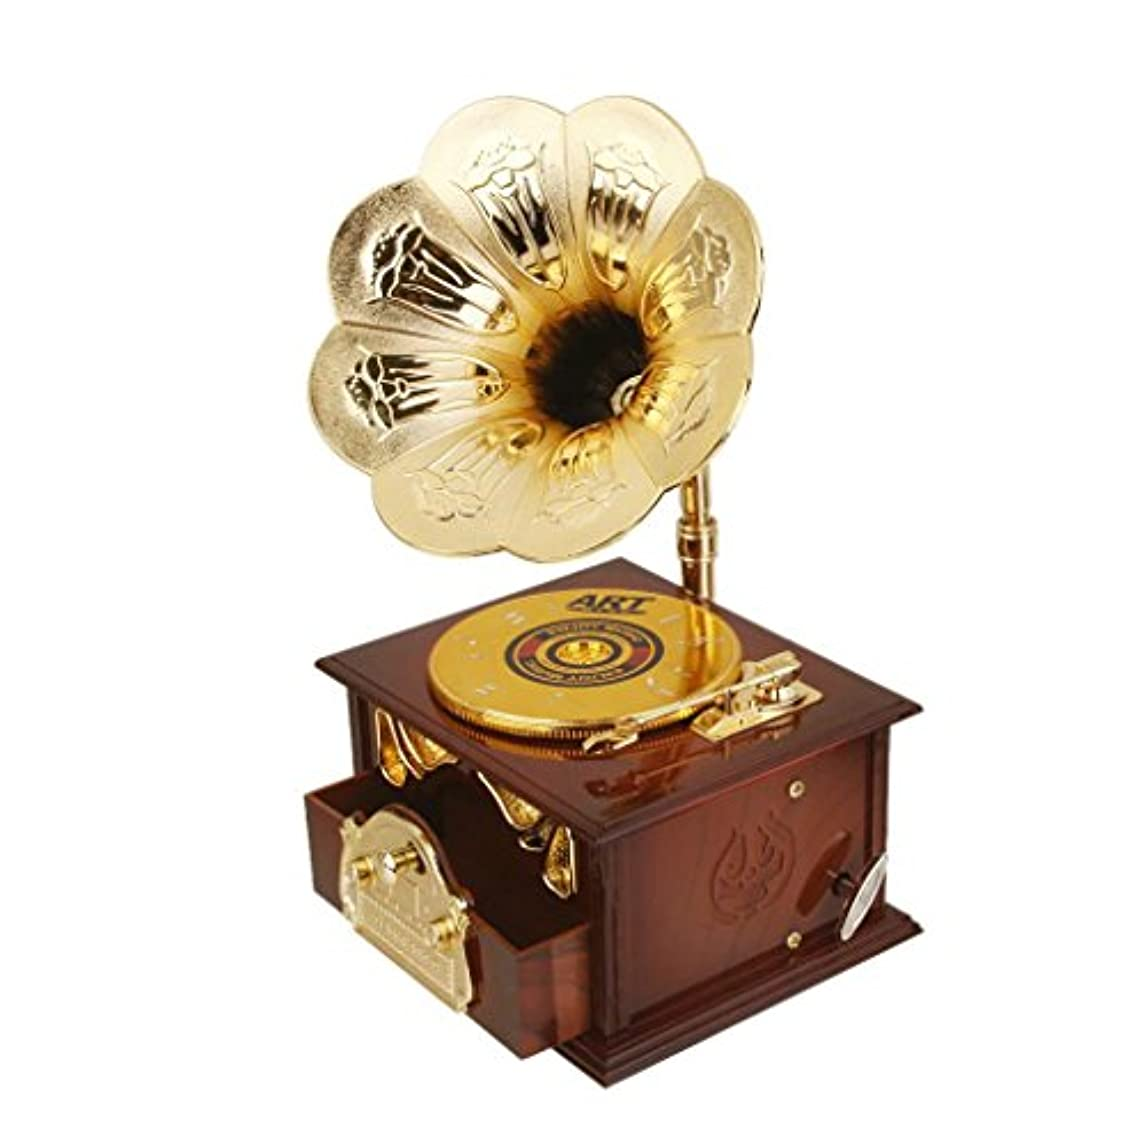 Wind up Music Box Vintage Look Music Box with Jewelry Box - Table Desk Decoration and Gift (Disc Machine, Brown)